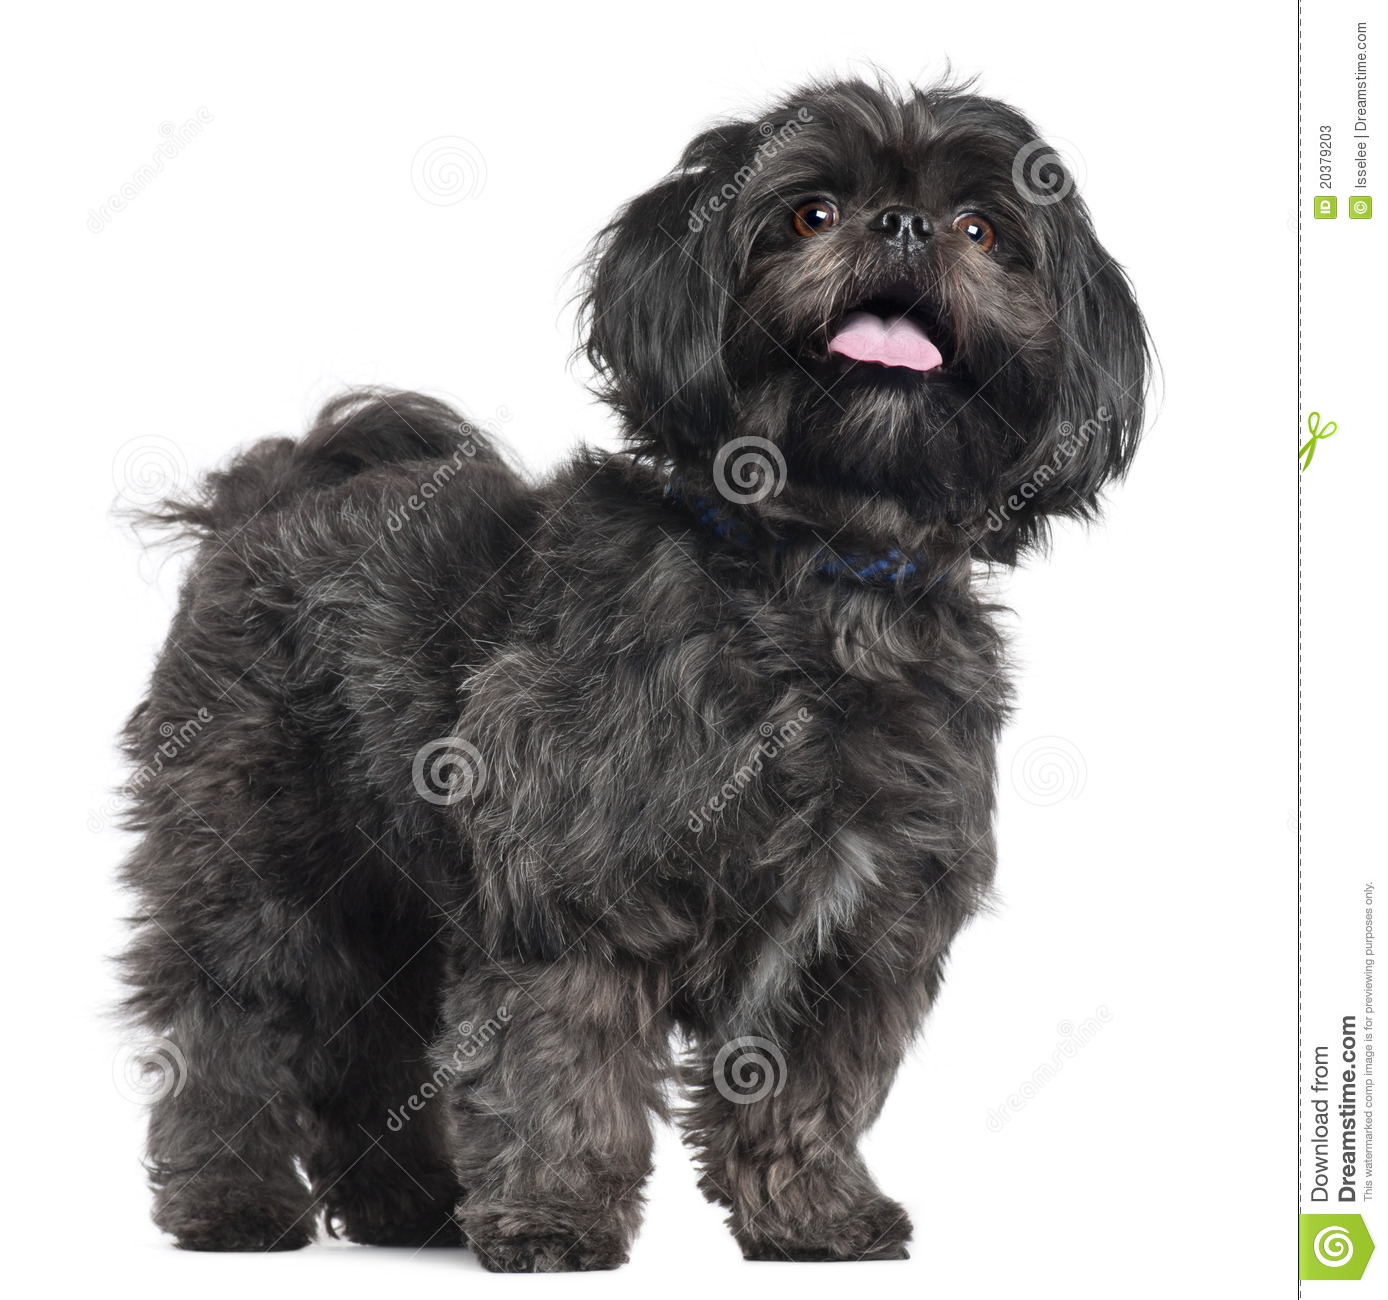 Lhasa Apso 2 Years Old Lhasa Apso, 3 Y...